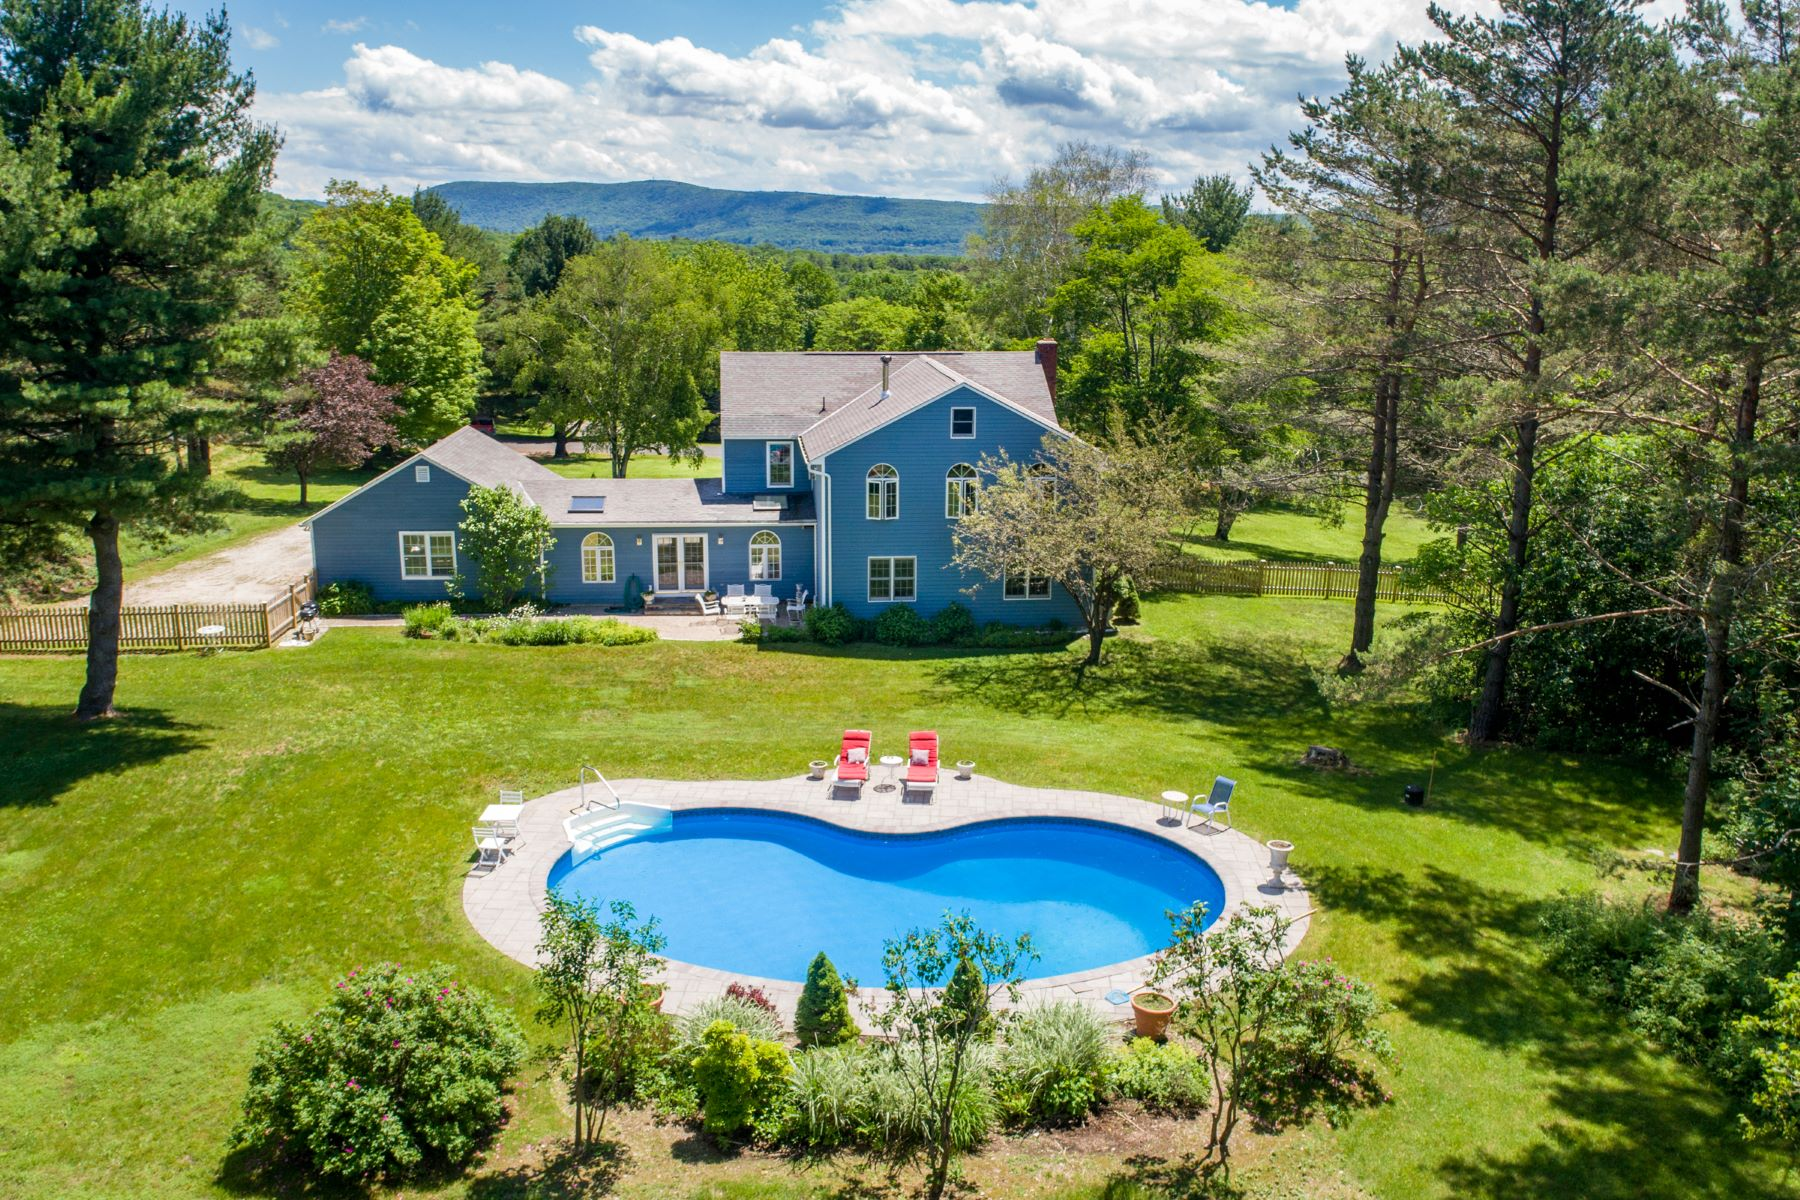 Casa Unifamiliar por un Venta en Classic Colonial with Privacy and Pool 91 Deer Hill Rd, Richmond, Massachusetts, 01254 Estados Unidos